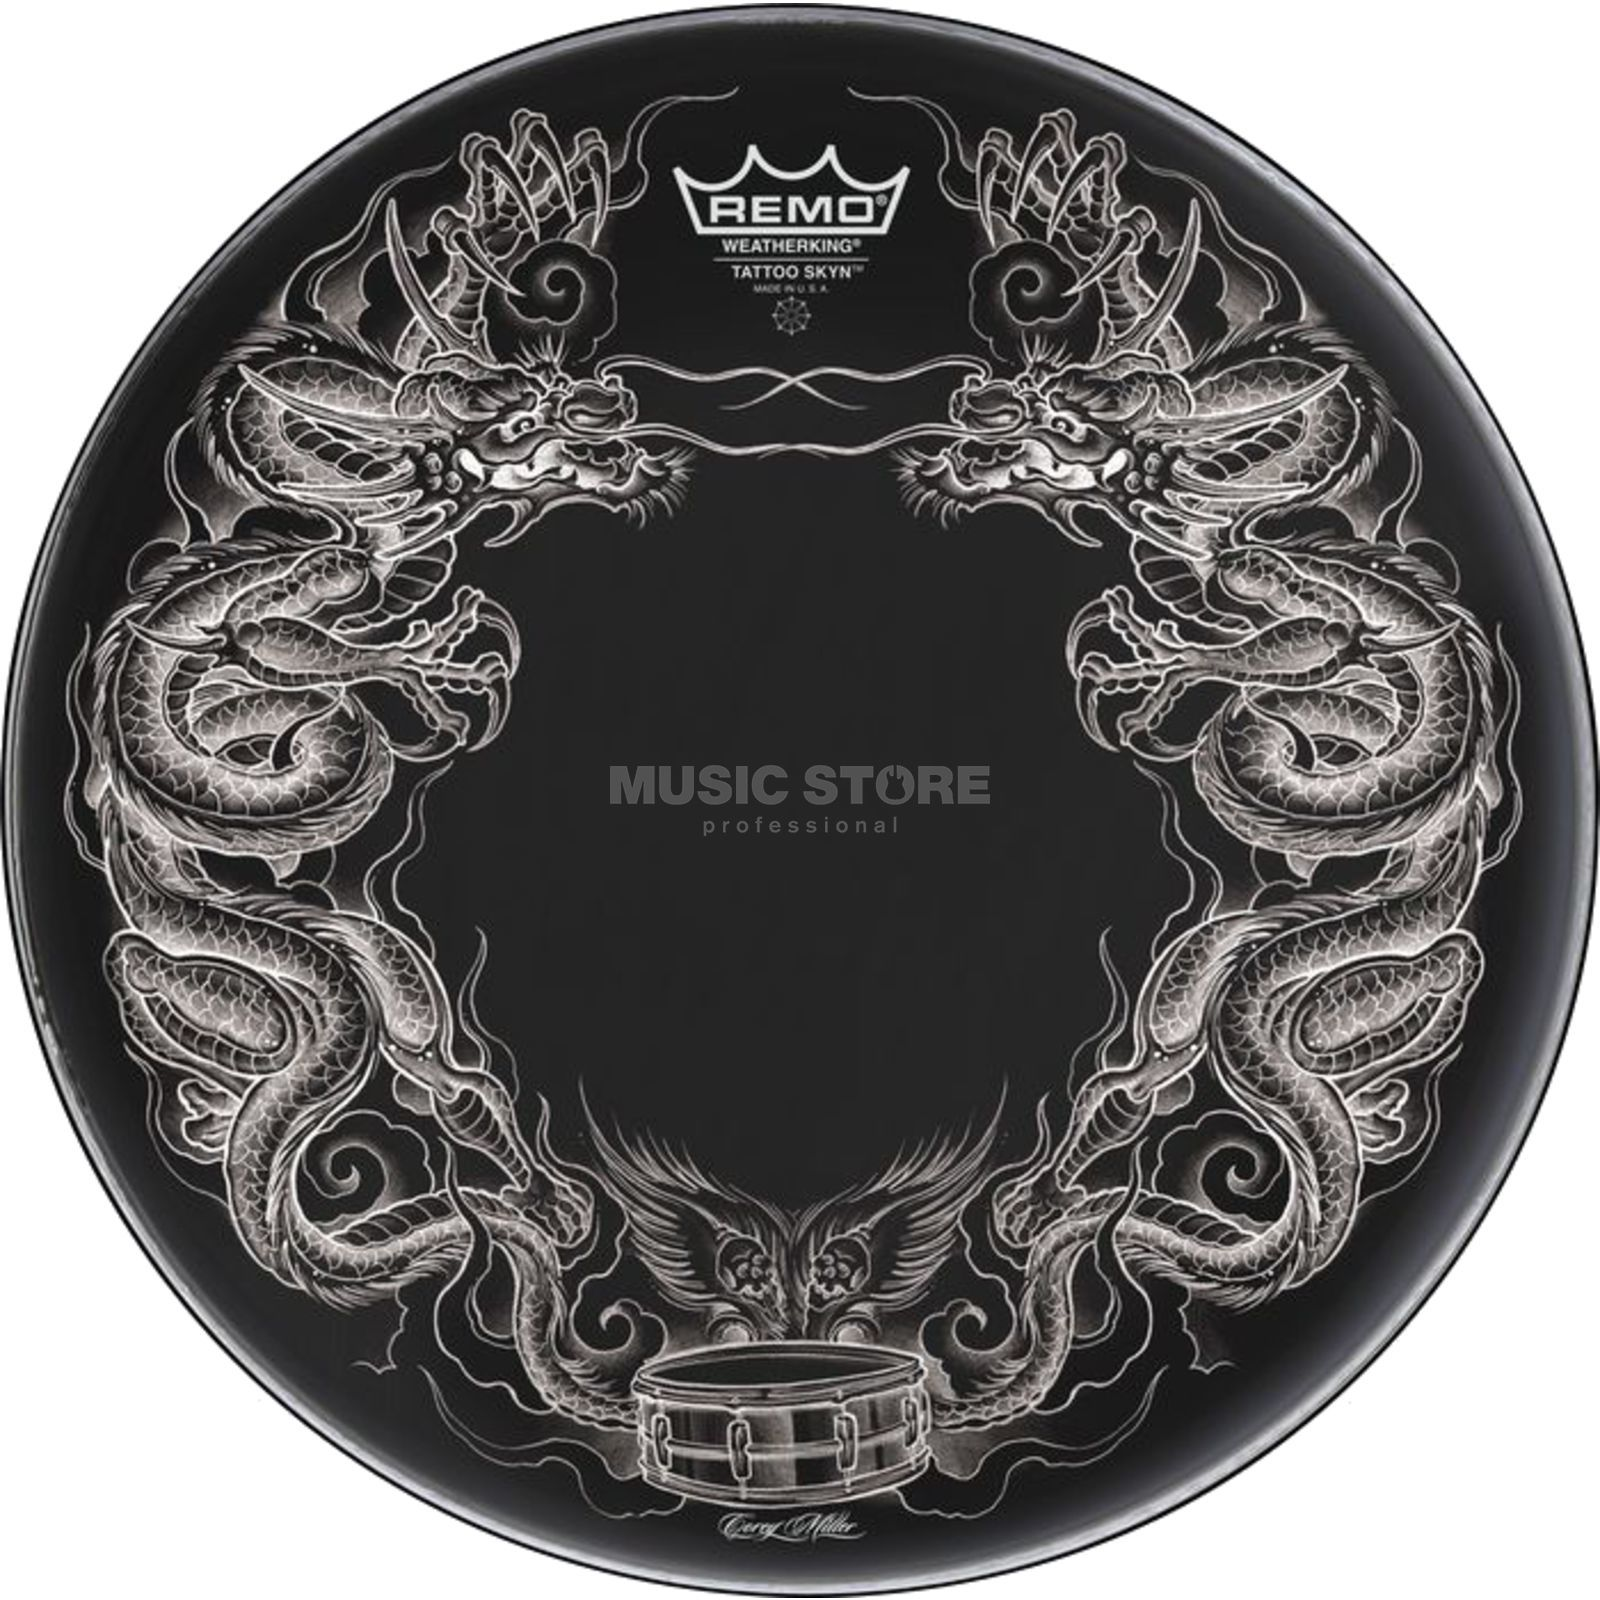 "Remo Tattoo Skyn 22"", Dragon Skyn on black Product Image"